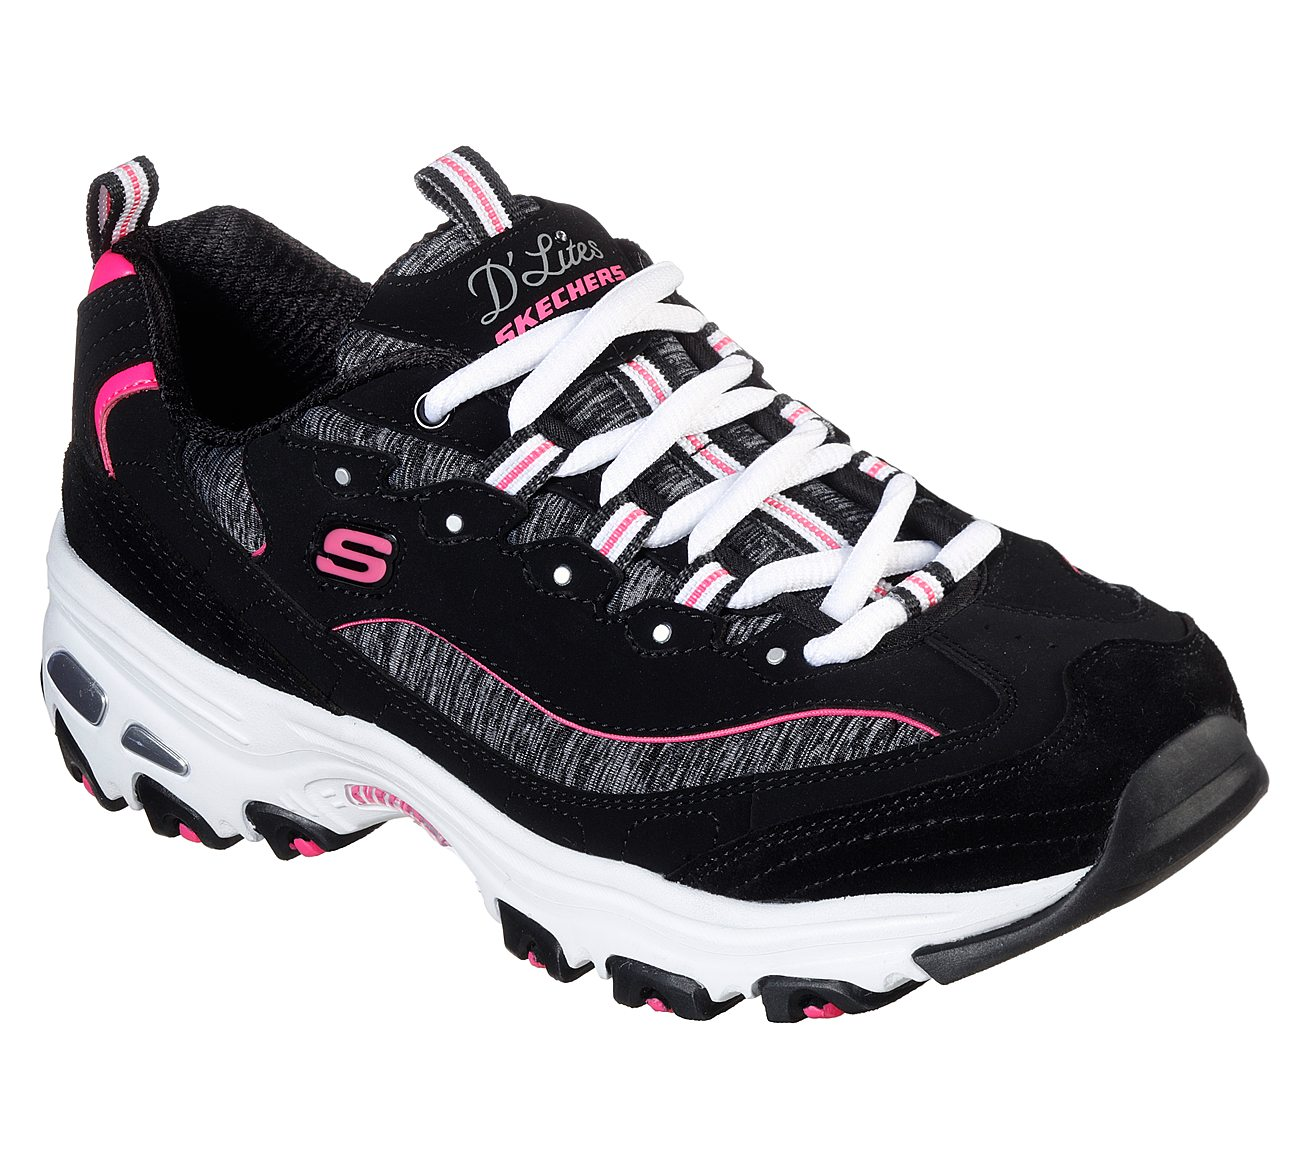 SKECHERS D'lites - Me Time D'Lites Shoes